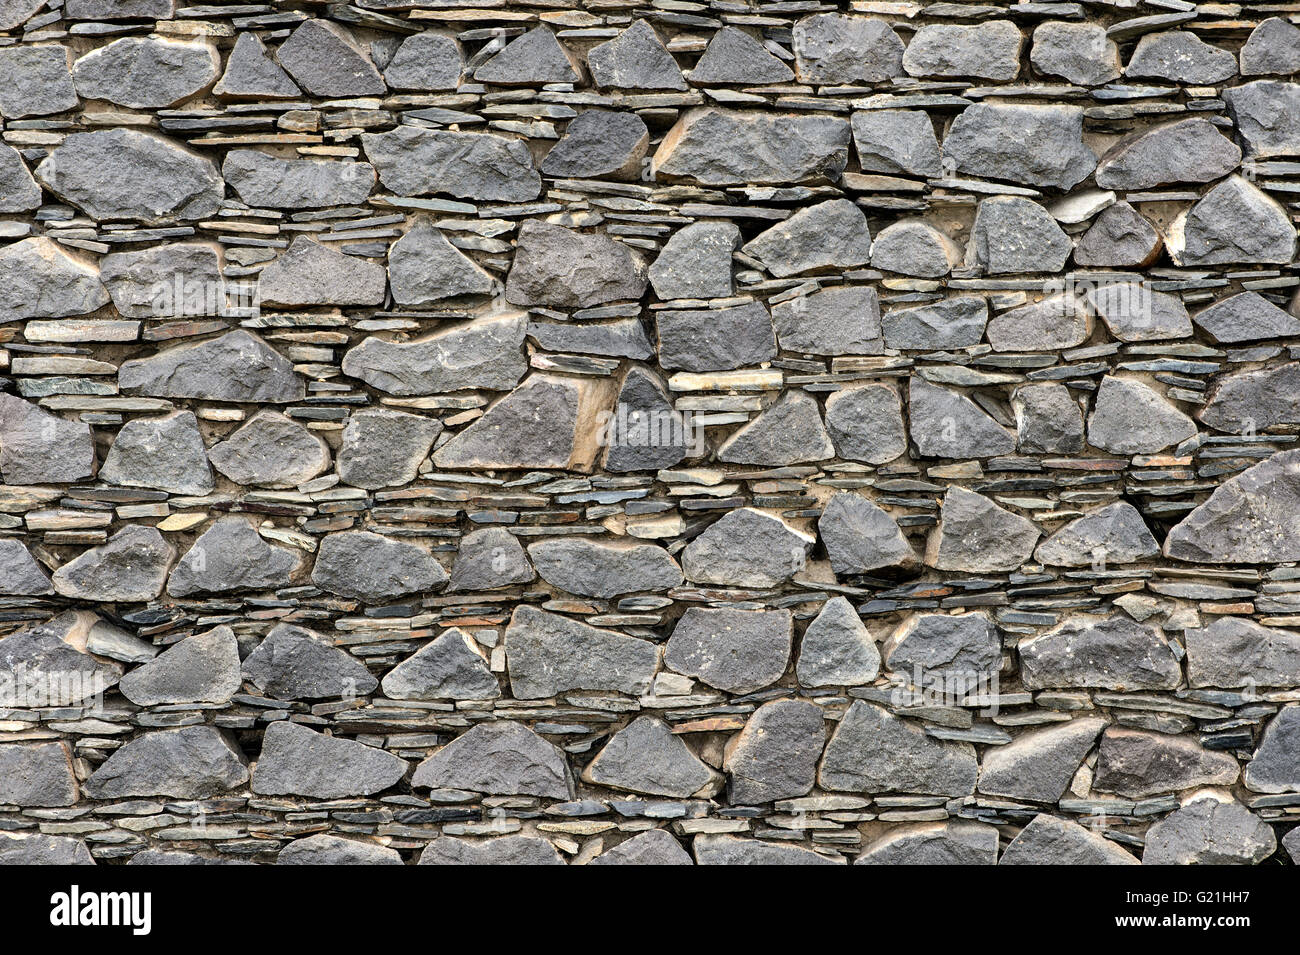 Wall of layered ground-down basalt stones and slates, ruins of Kitan fortress Khar Bukh Balgas, Khar Bakhin Balgas, - Stock Image